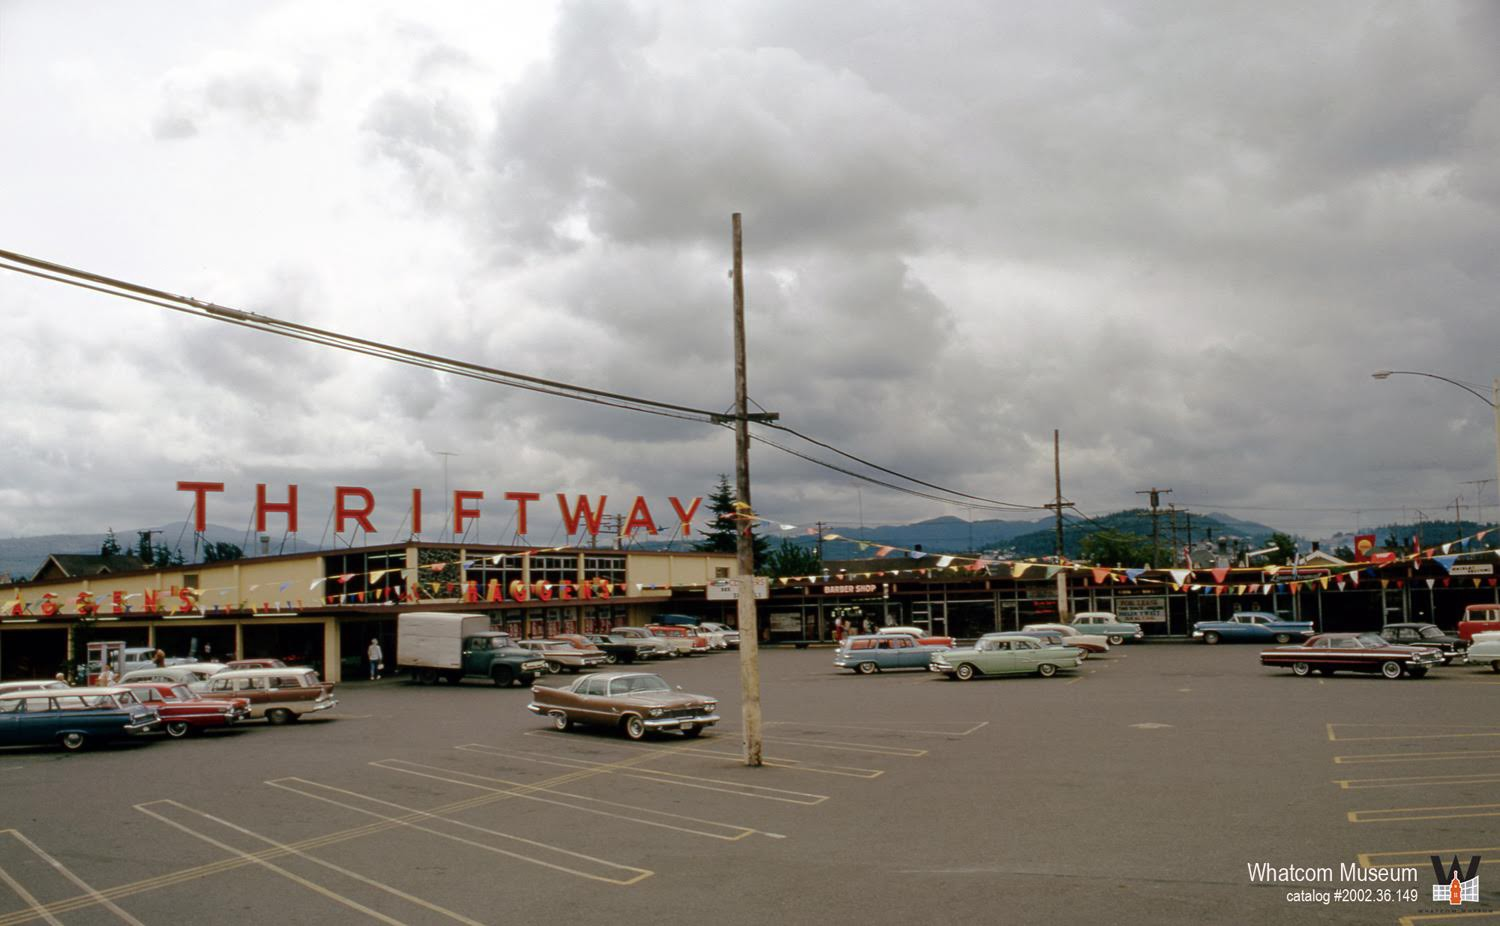 parking lot of cars and supermarket in the background